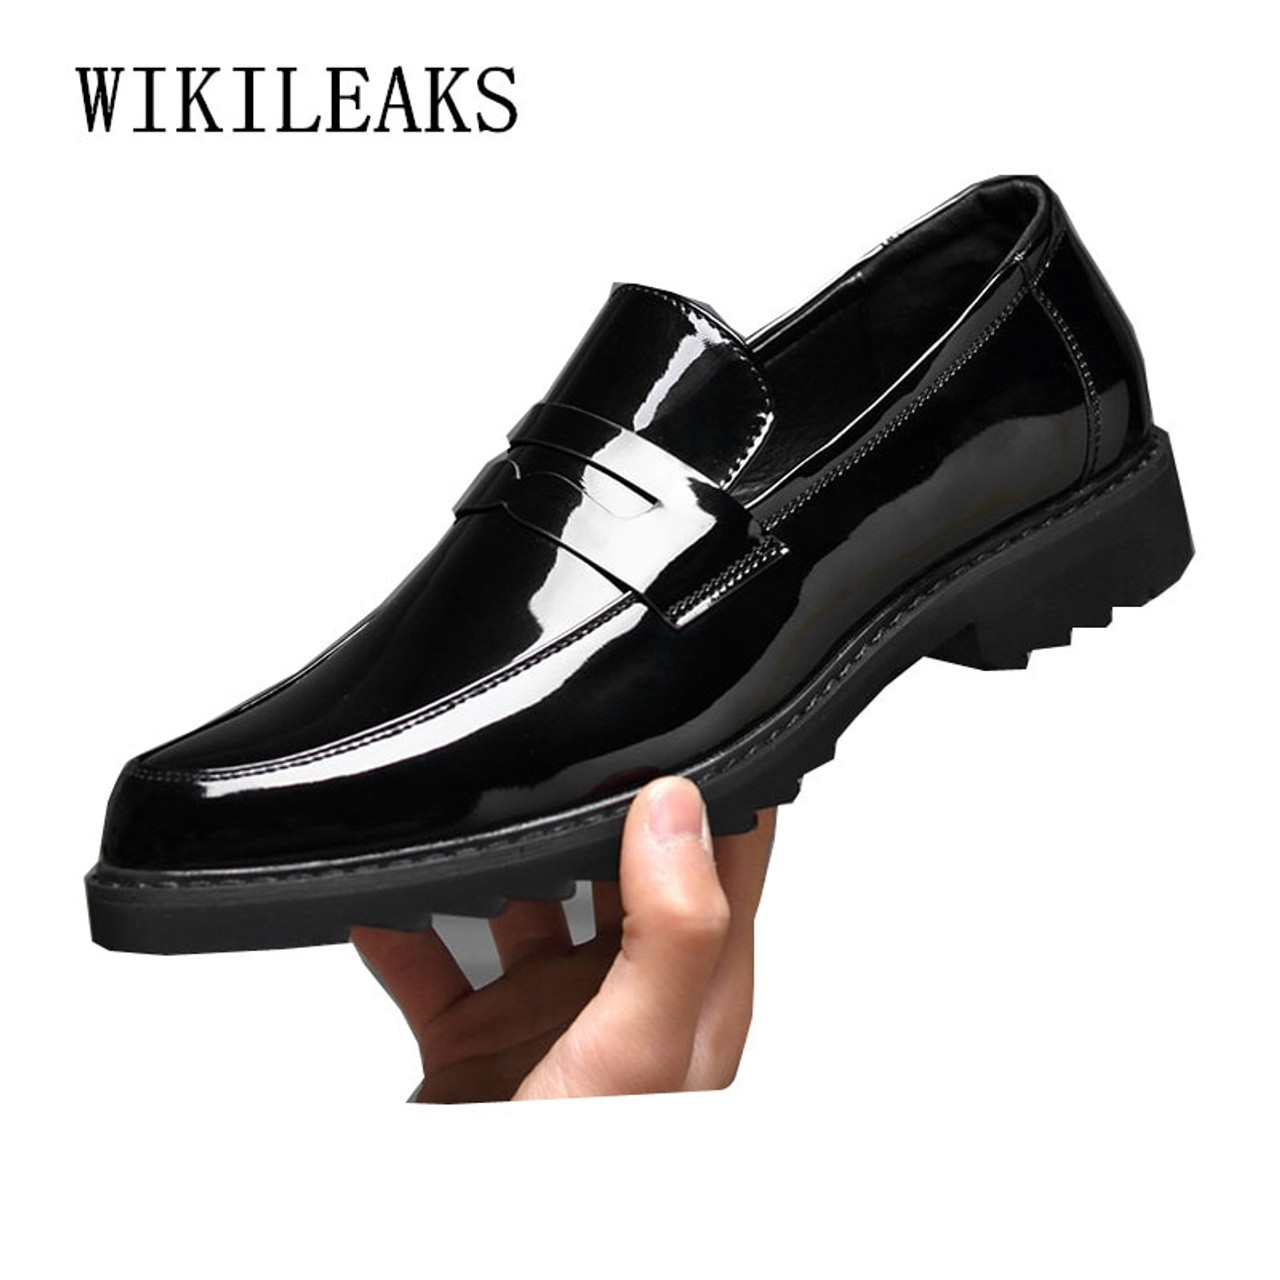 MENS PATENT LEATHER SMART WEDDING FORMAL OFFICE DRESS WORK SHOES BUSINESS SHOE